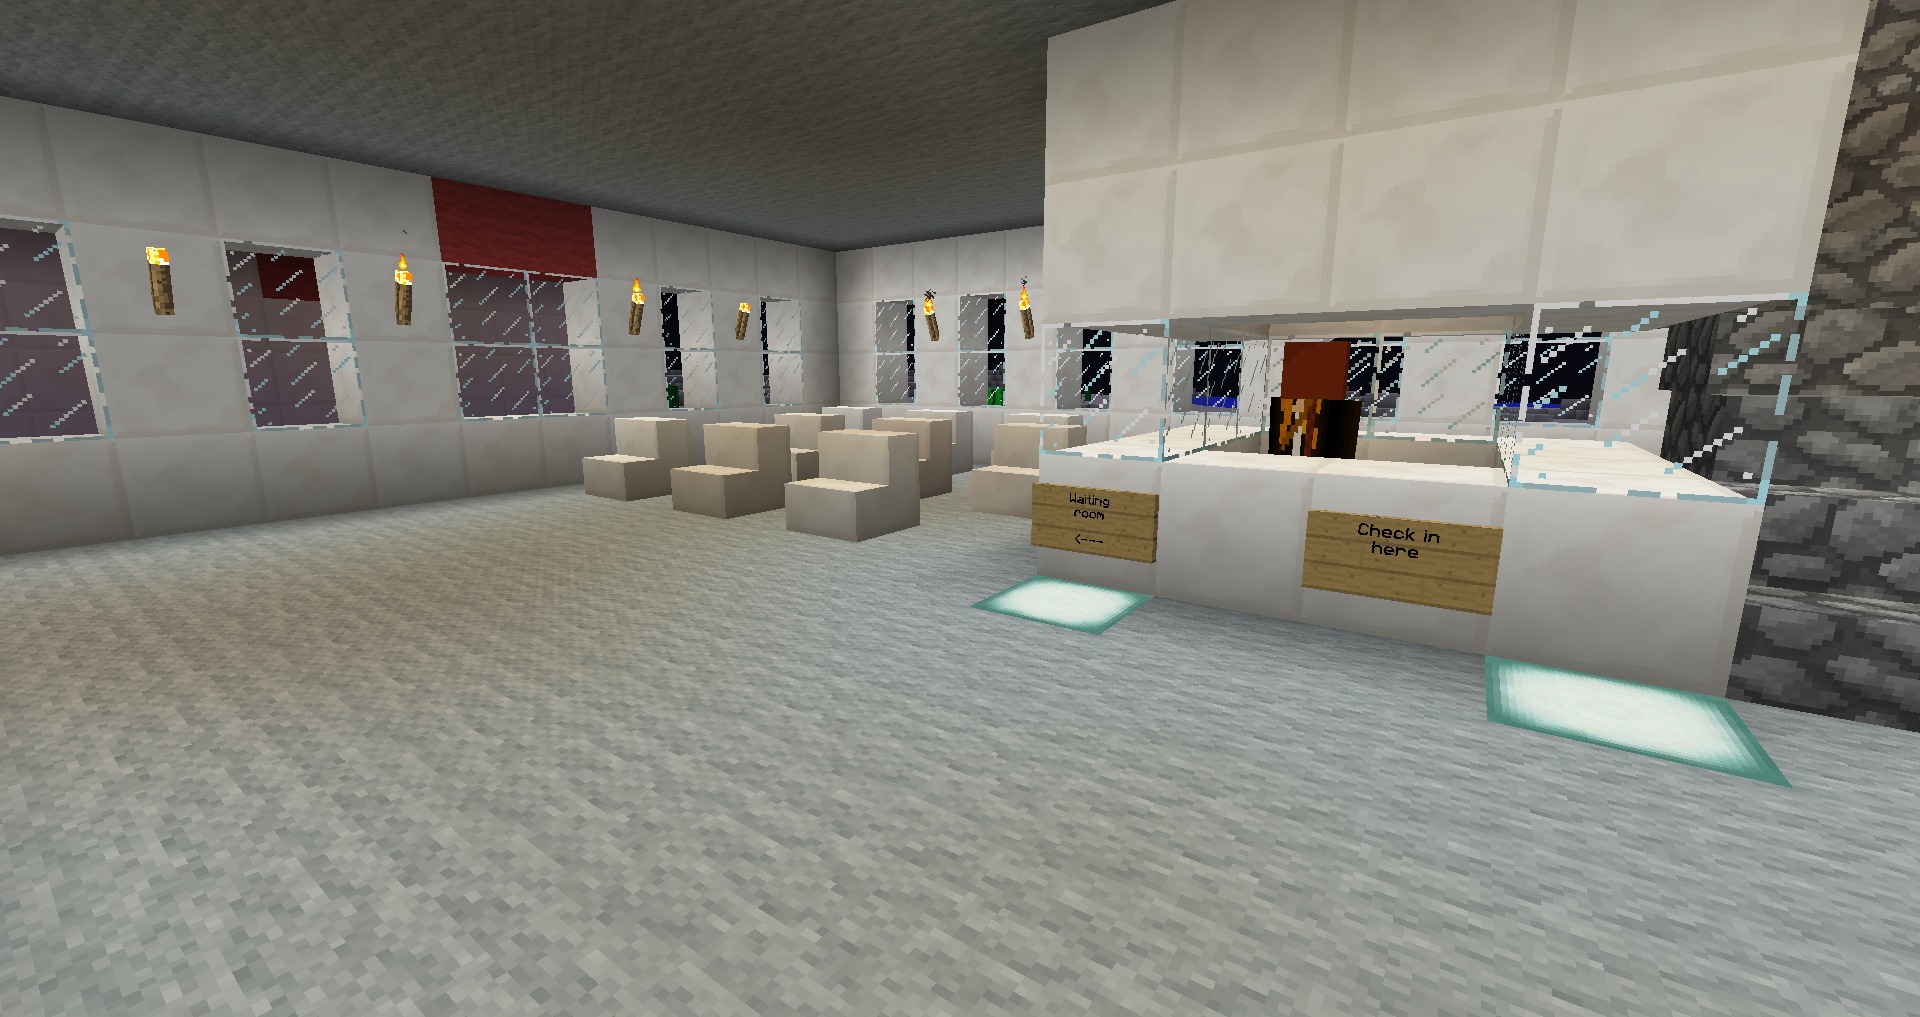 lizc864 mcph co lizc864 minecraft hospital waiting room please try